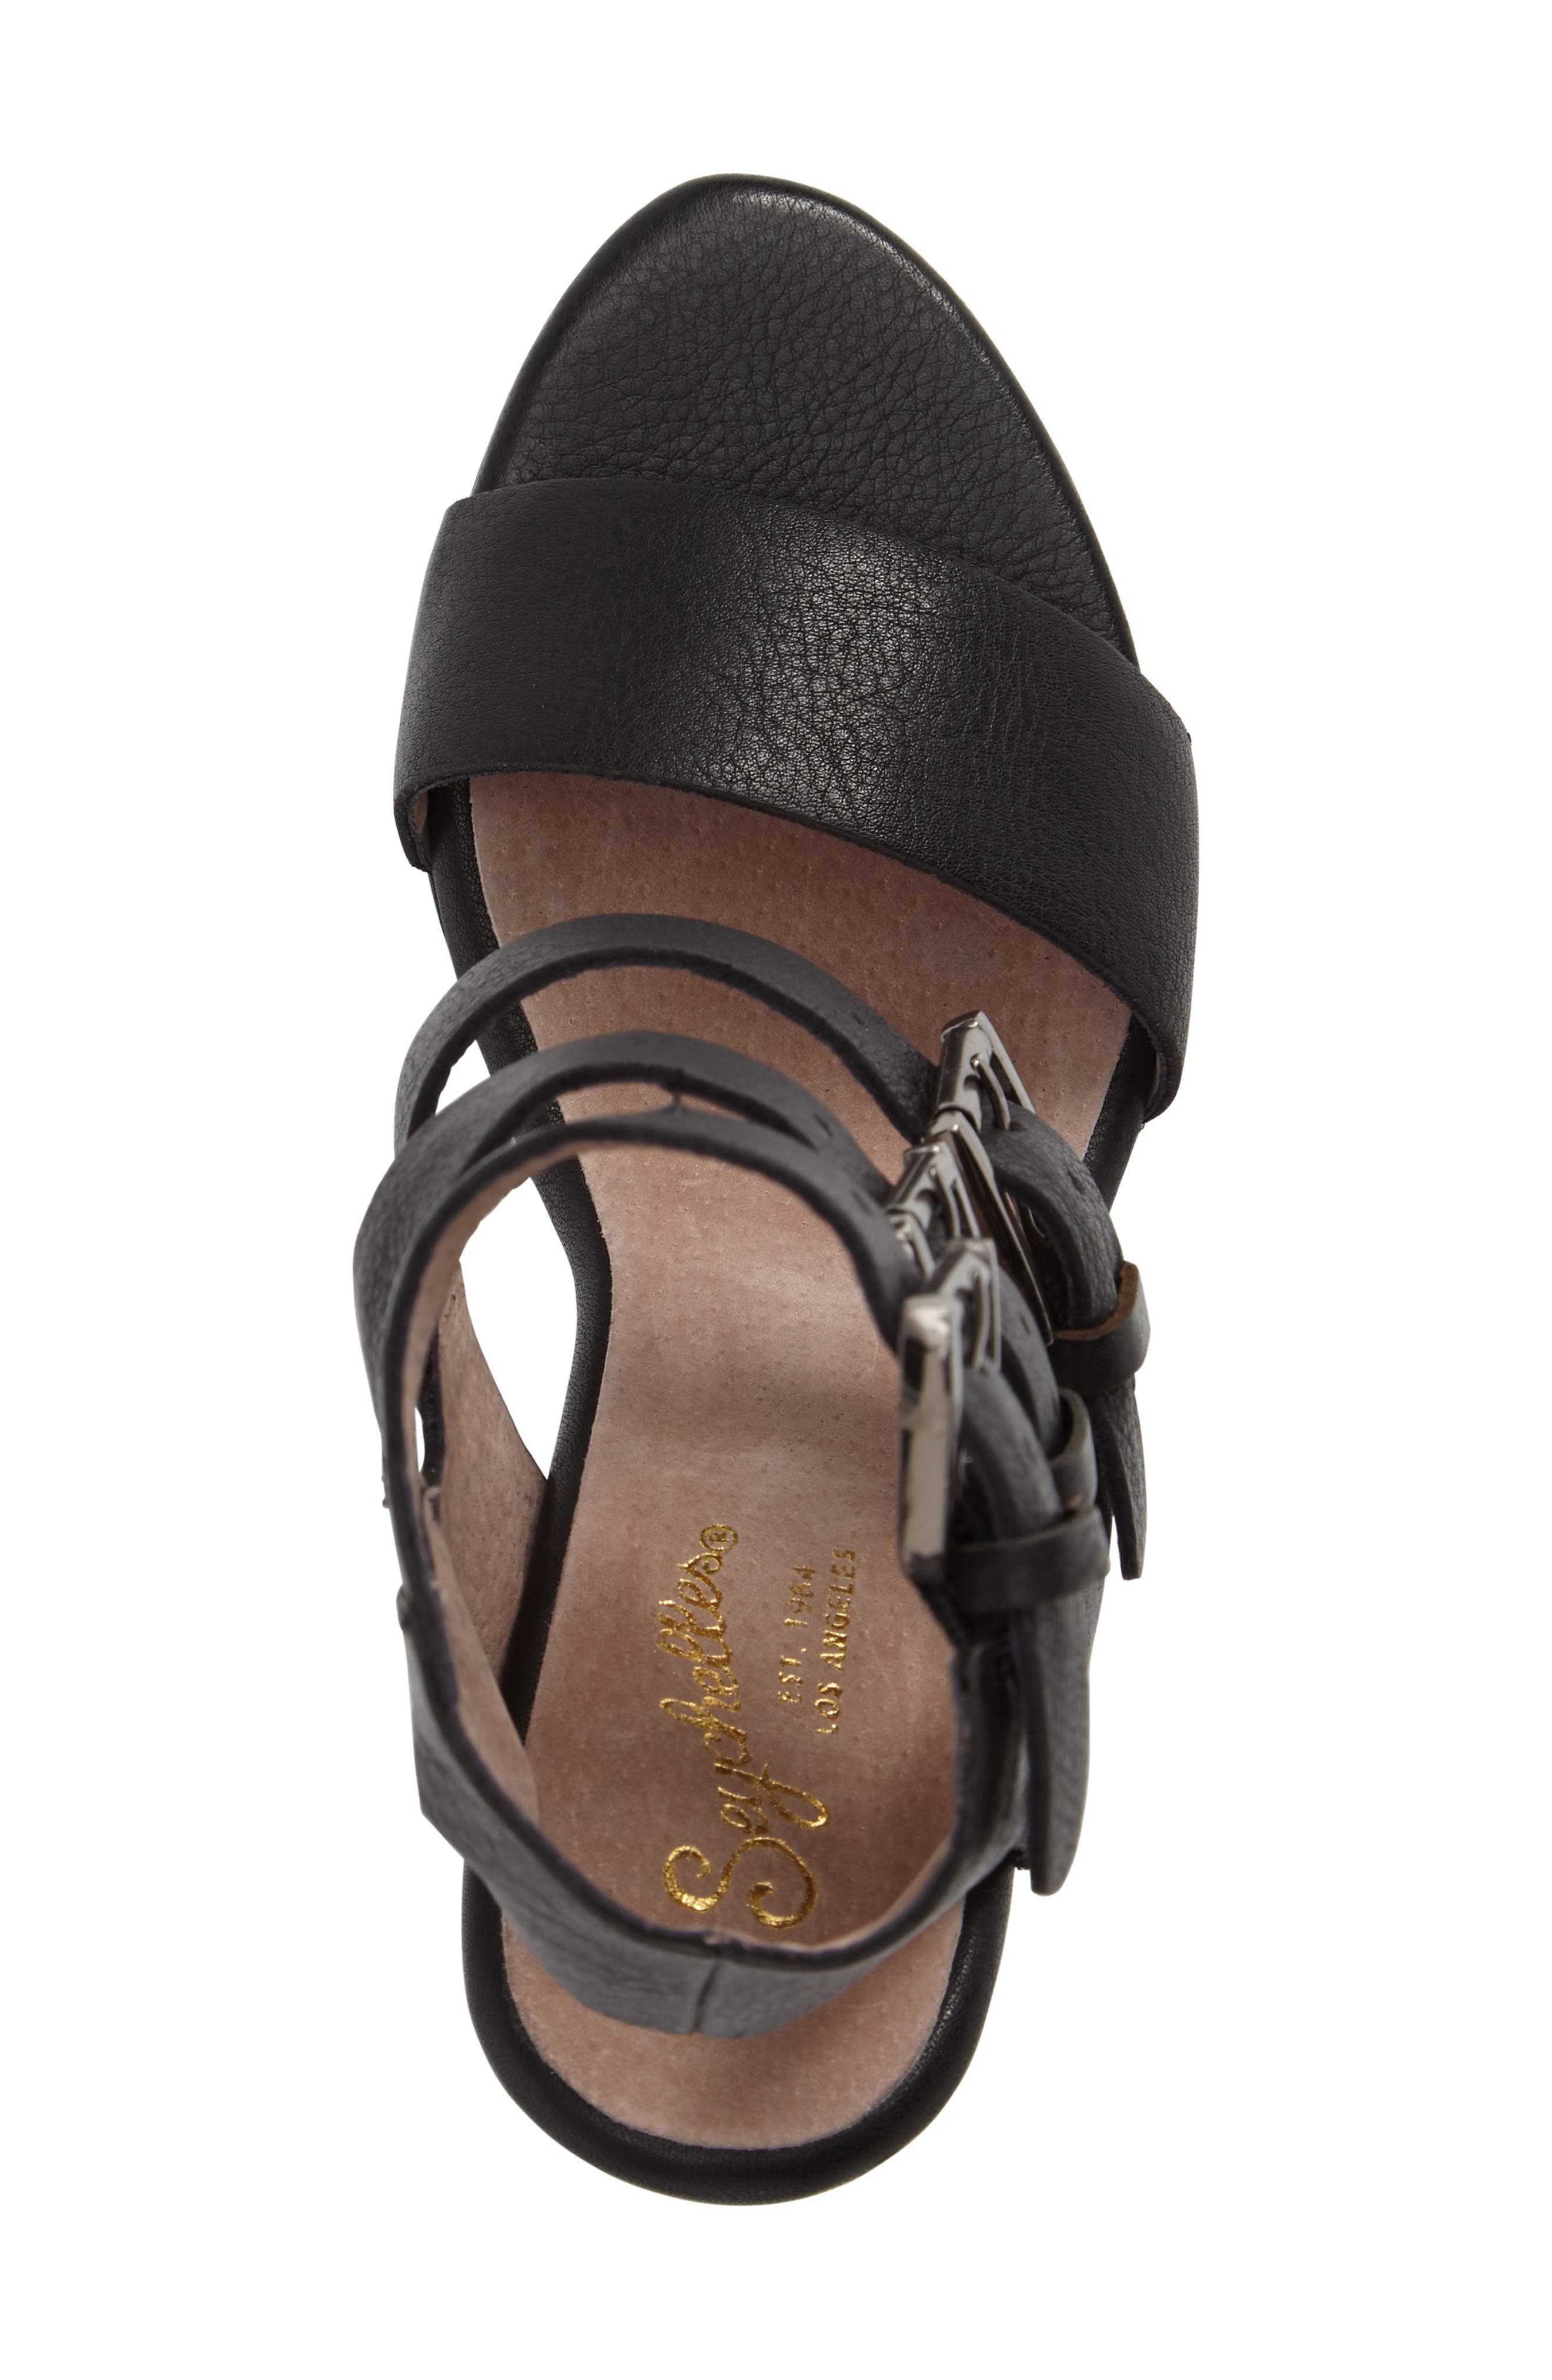 Dilly Dally Sandal,                             Alternate thumbnail 5, color,                             Black Leather